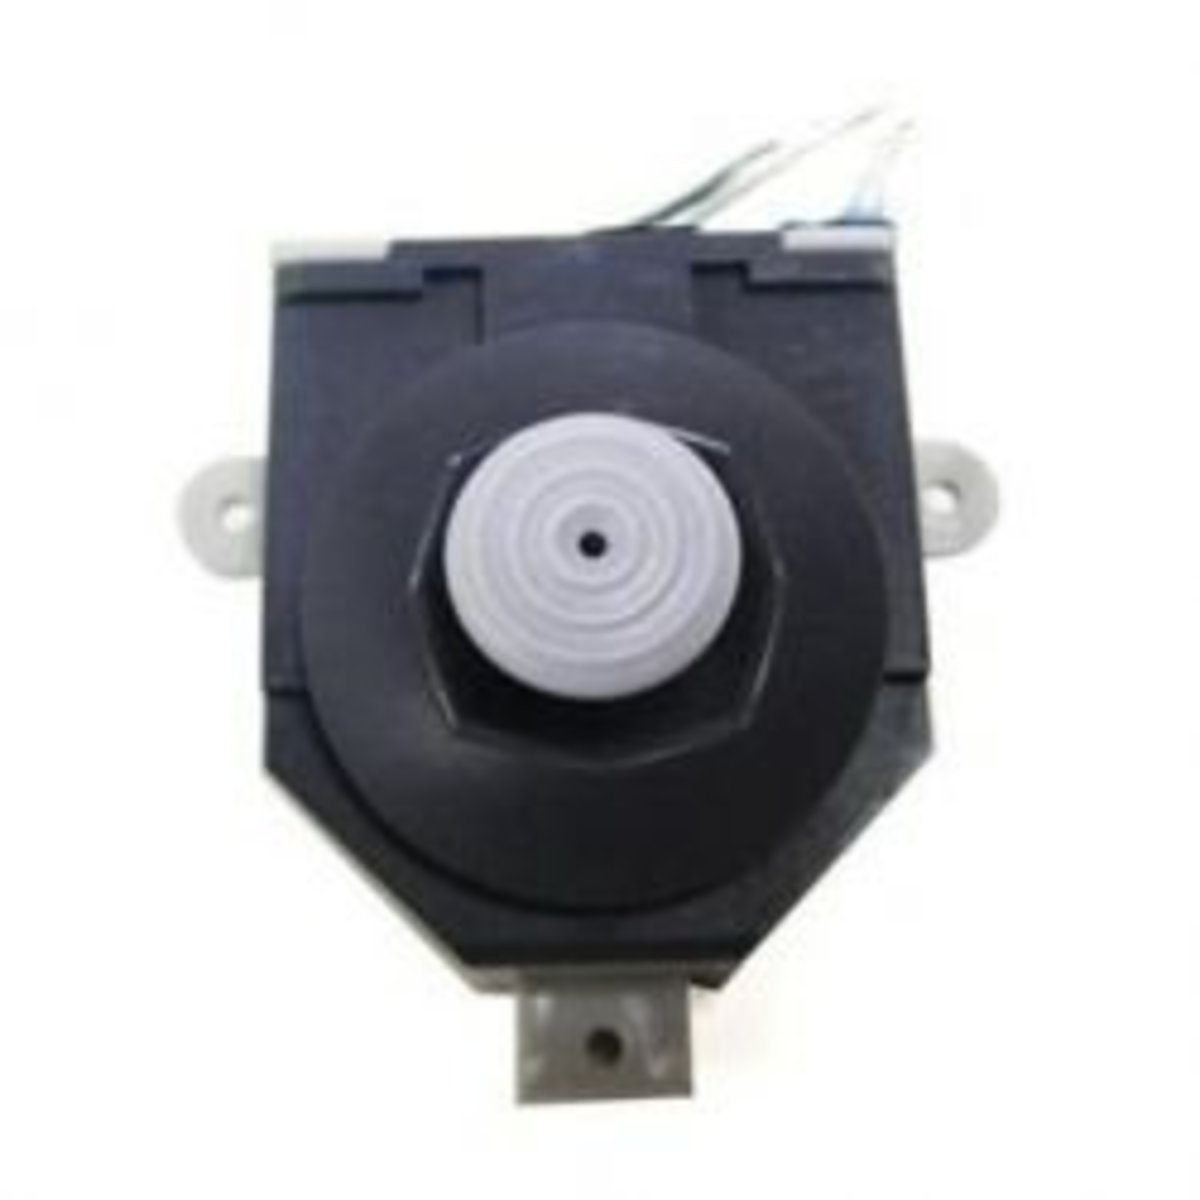 OEM Style N64 Replacement Thumbstick